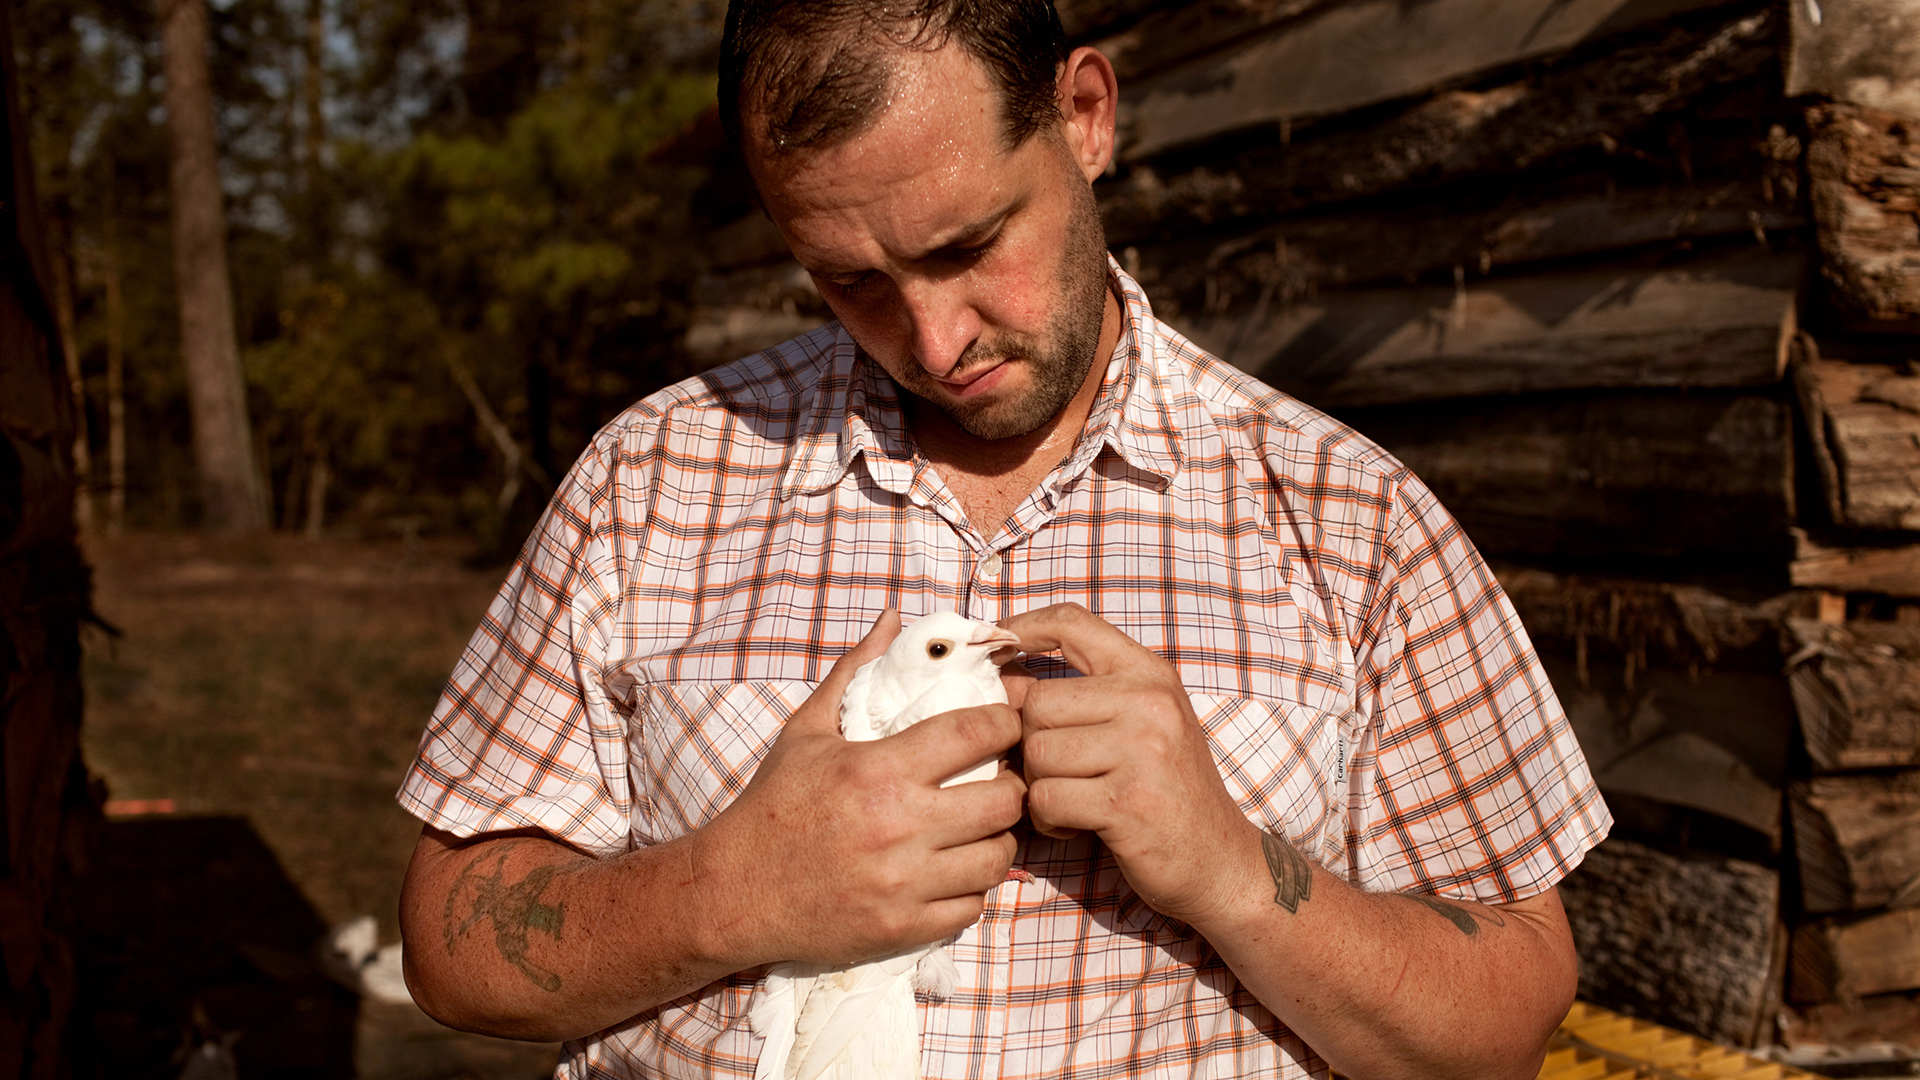 U.S. Army veteran Alex Sutton cradles a rock dove show pigeon, one of many heritage poultry breeds being raised on his 43 acre farm in Moore County, North Carolina in the spring of 2012.